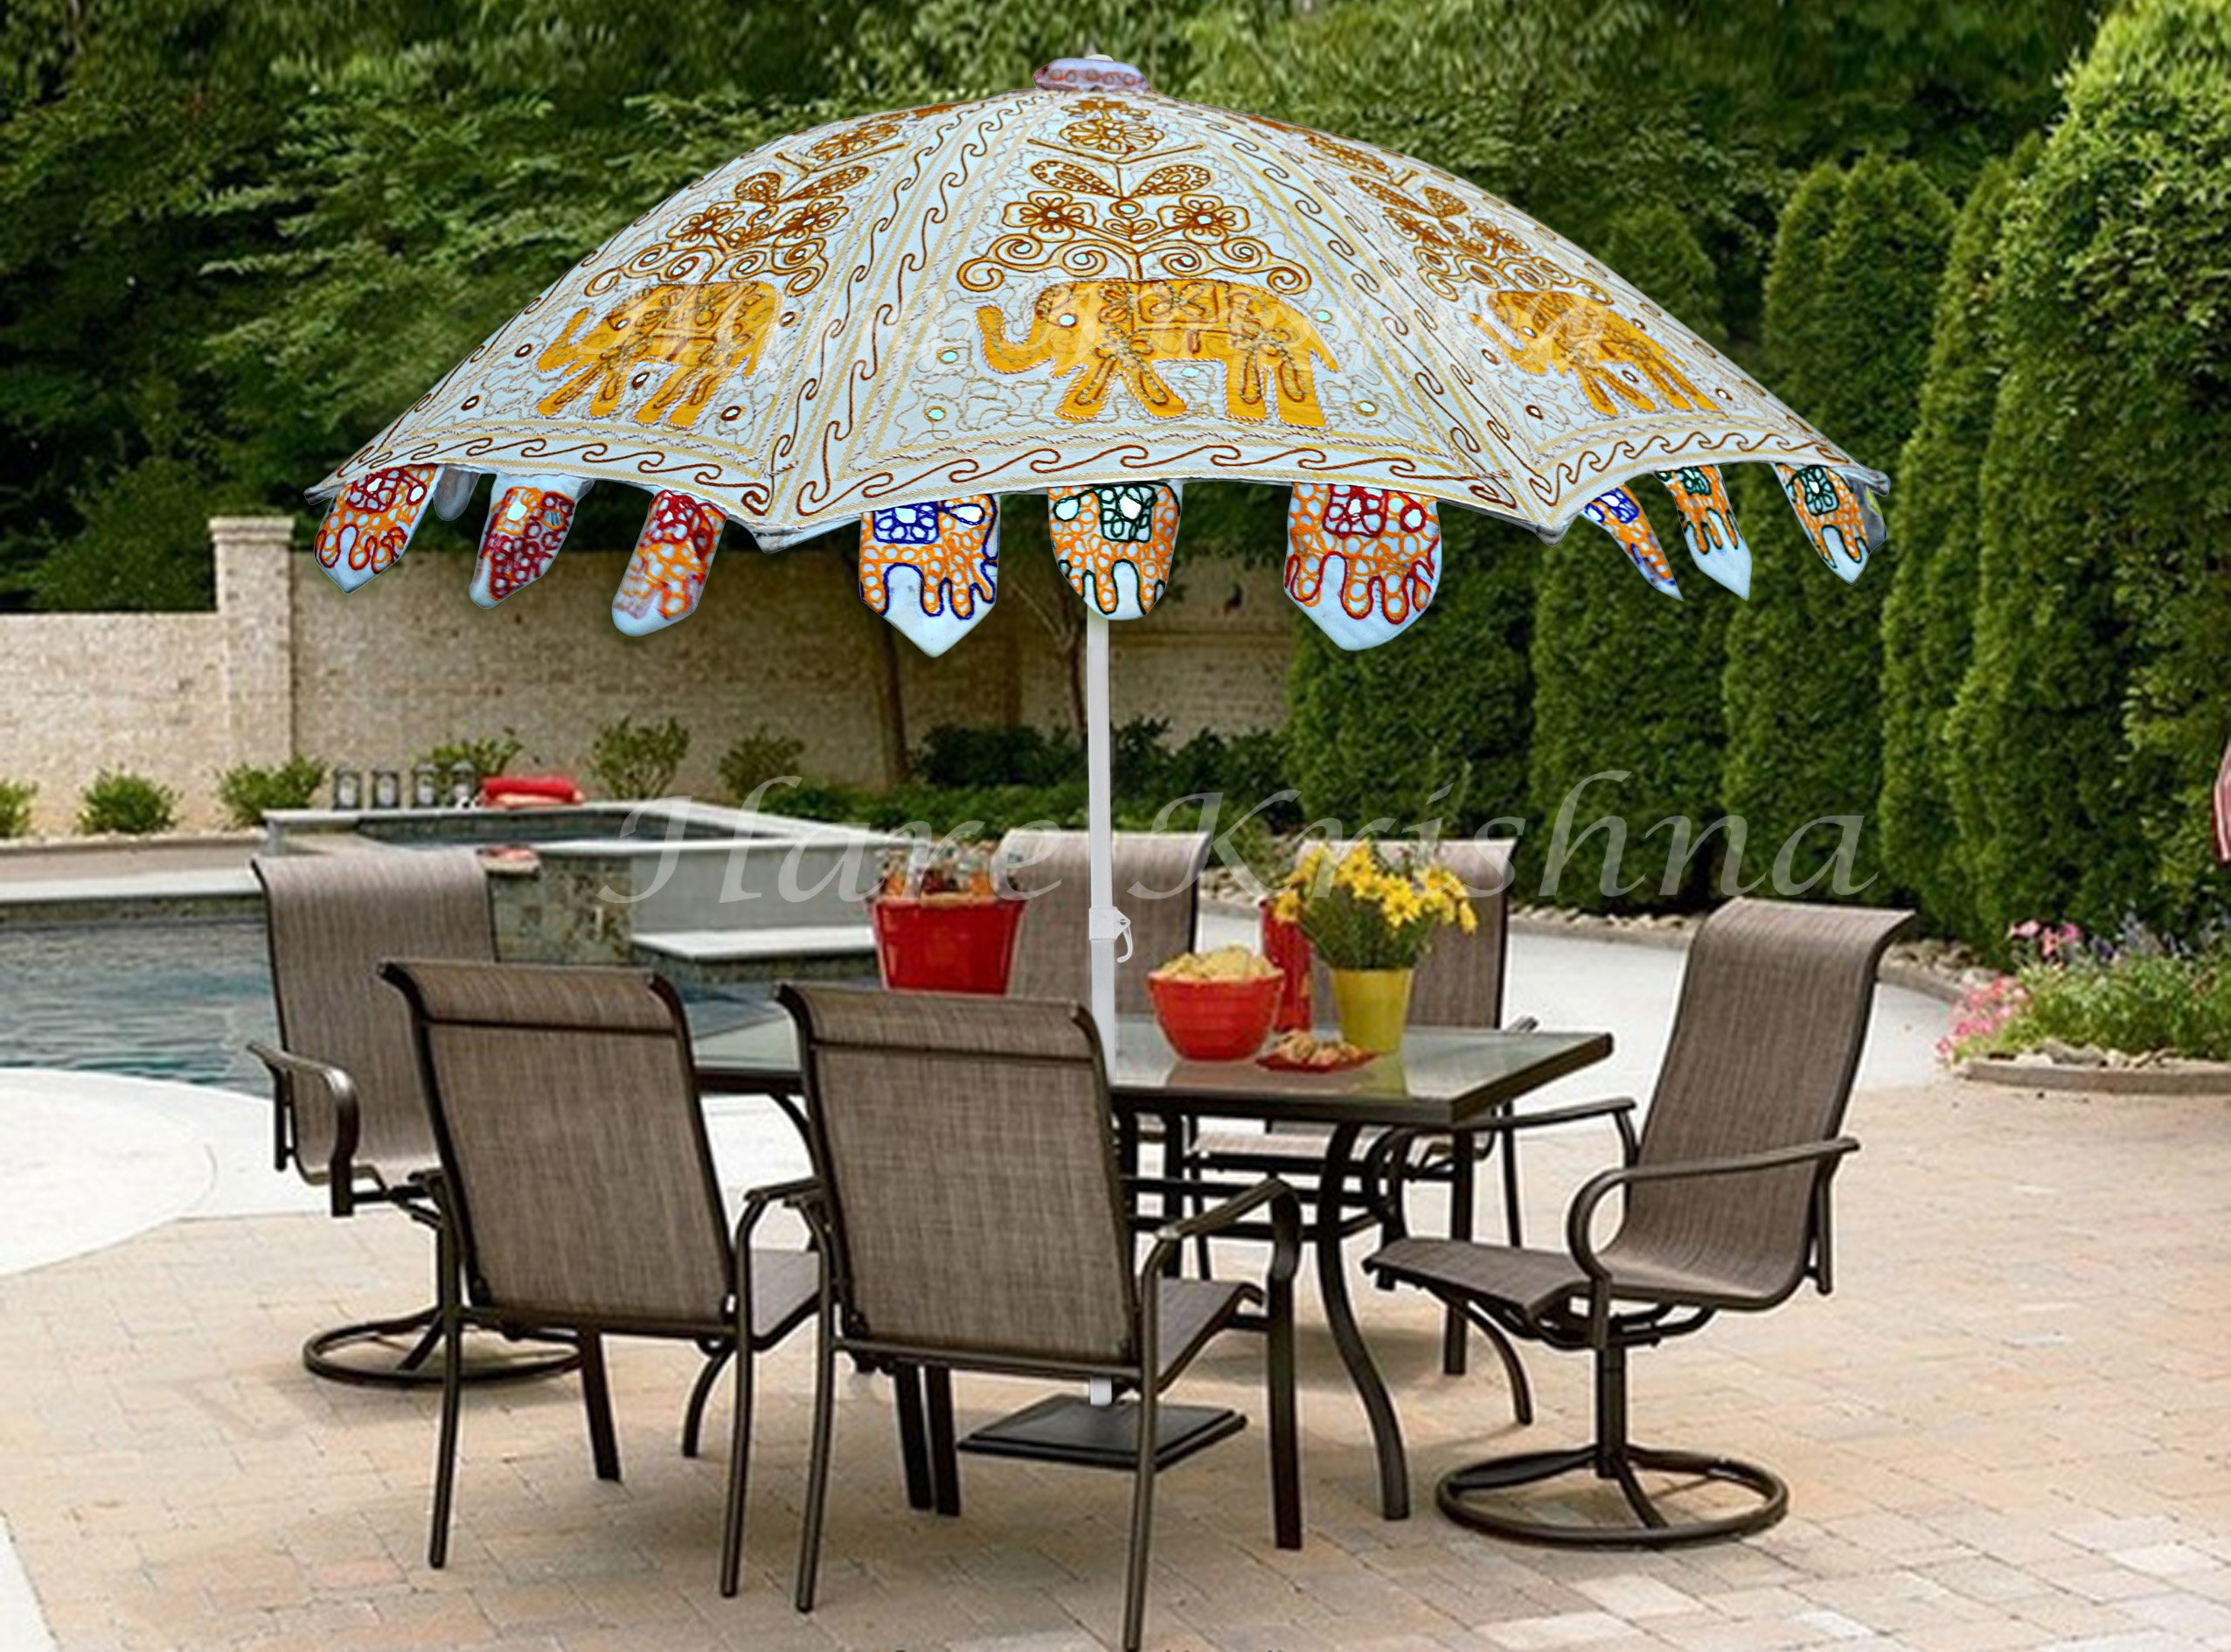 Hare Krishna Large Garden Parasol Round Outdoor Cafe Resort Umbrella 70 x 90 Inches - Decorative Garden Umbrella Sun Parasol Made in India With Colorful Embroidery These Umbrella are designed in various color combination and are offered in a multitude of motifs, patterns, various other specifications. Can't be used in rain - shades-parasols, patio-furniture, patio - 91mGeQ0%2BuwL -